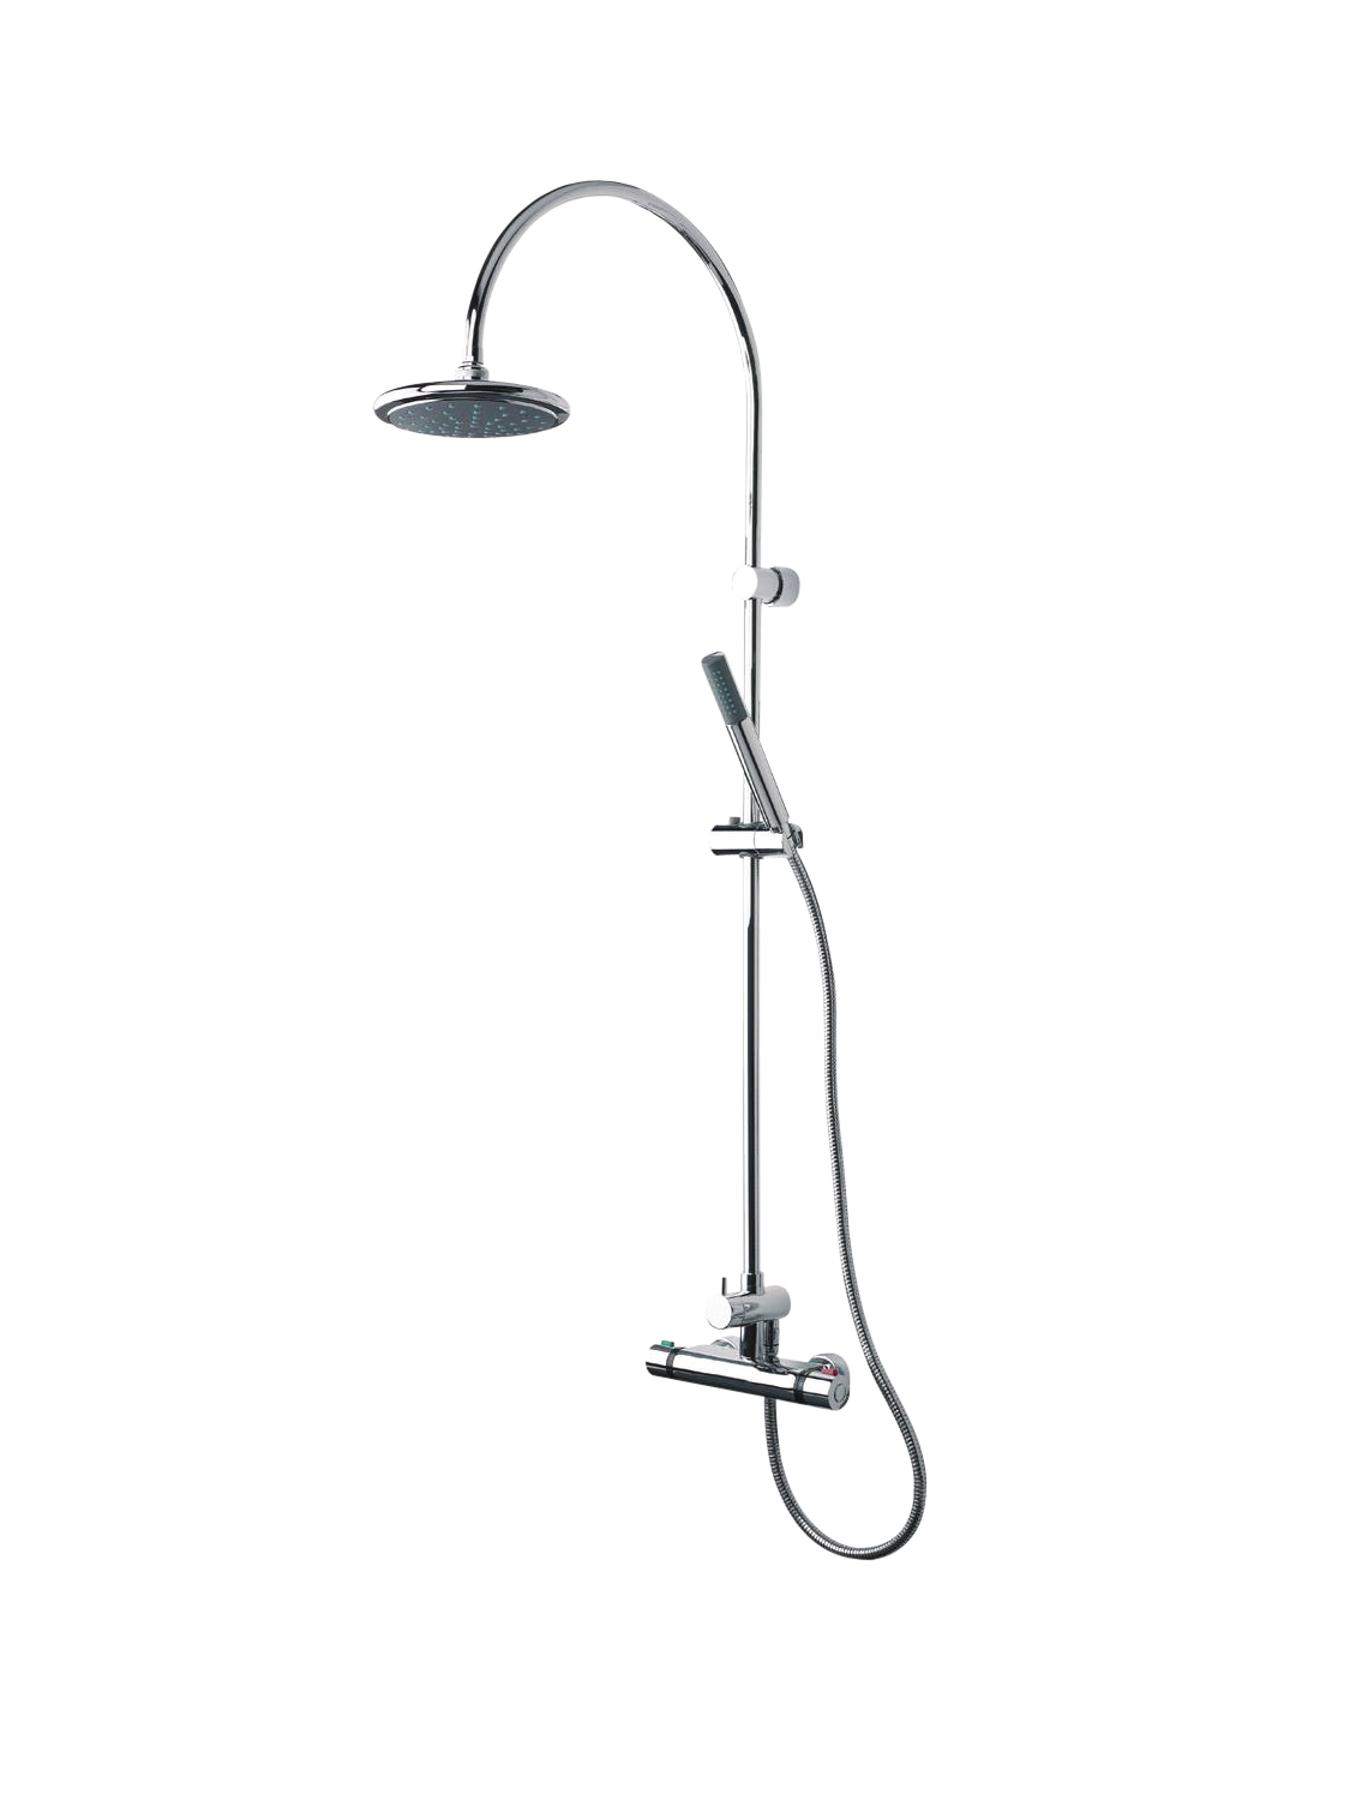 Capella Bar Diverter Mixer Shower